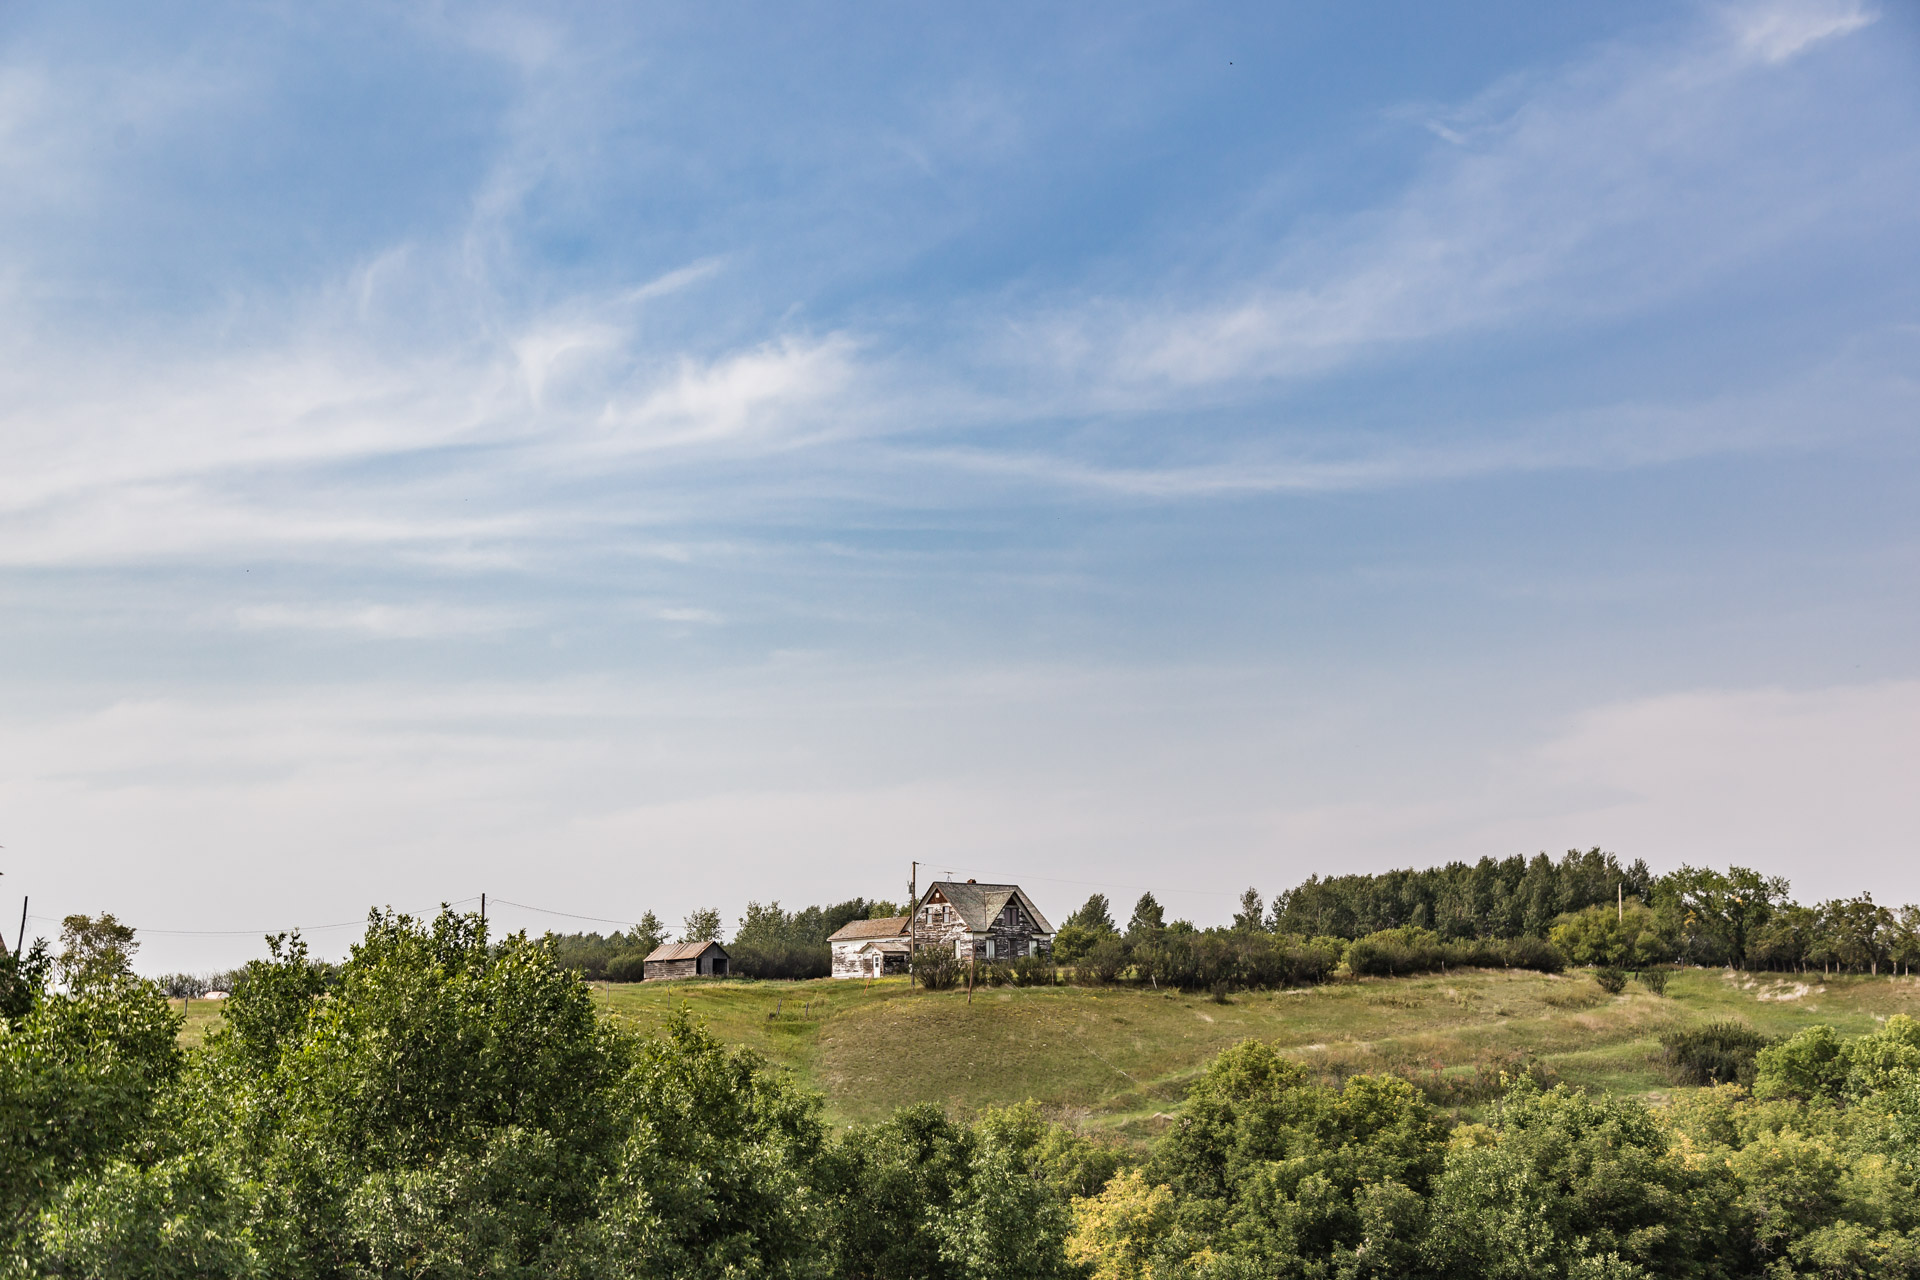 Elbow, Saskatchewan, Canada - Hilltop Farmhouse